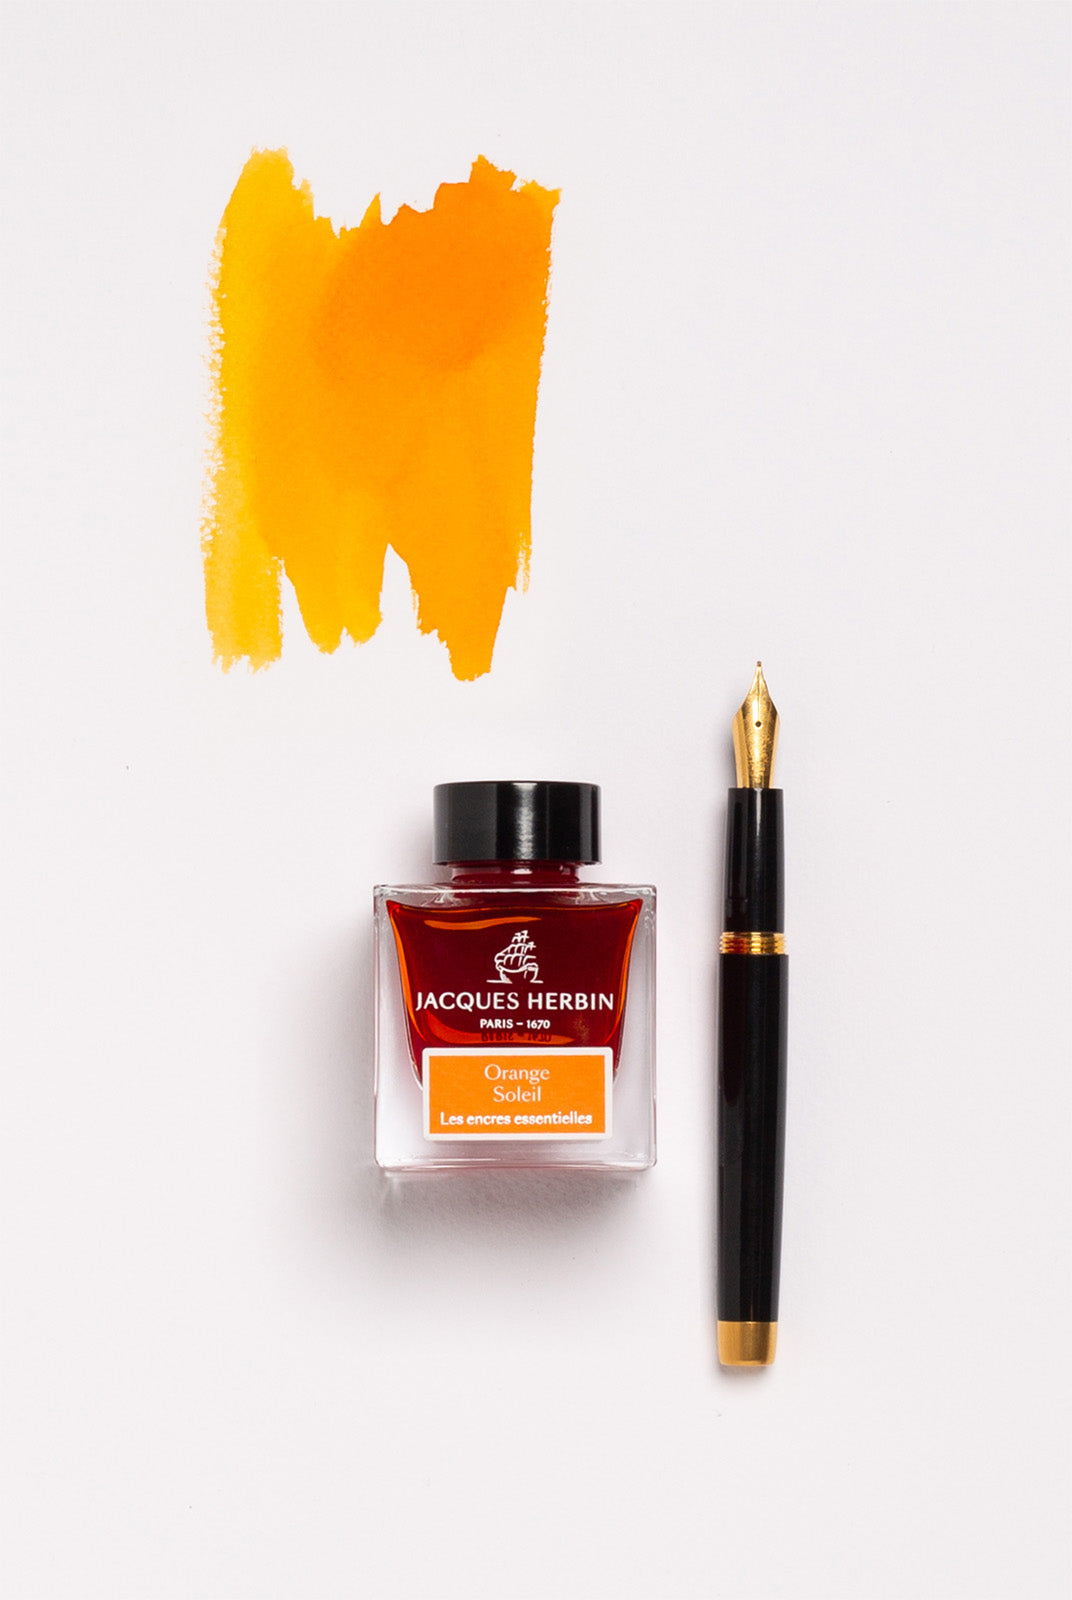 Jacques Herbin - The Essentials - 50ml Bottle Ink - Orange Sun (Orange Soleil)